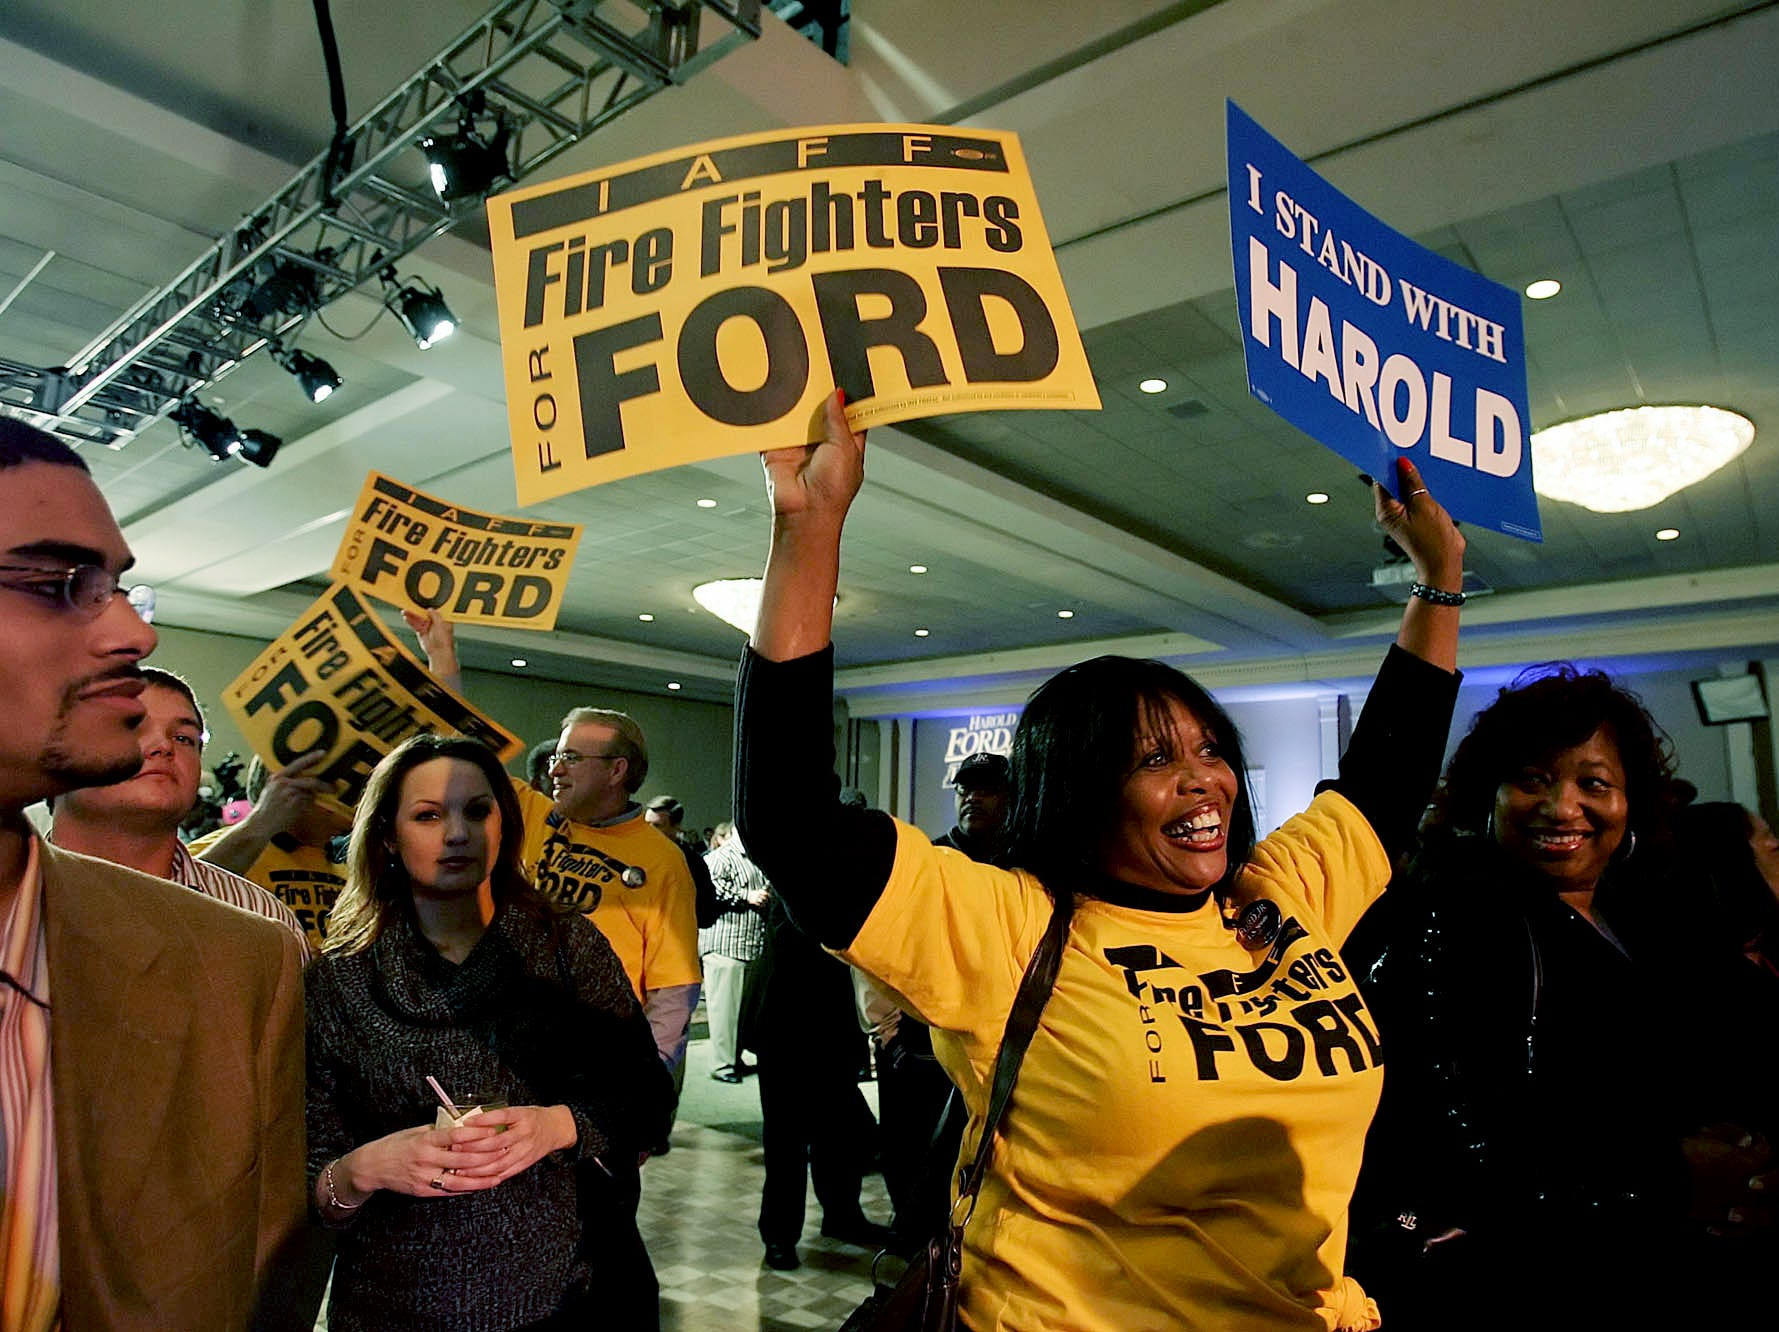 Linda Carter, center, dances at a rally for Democratic candidate U.S. Senate Harold Ford Jr. at the Peabody Hotel in Memphis on election night Nov. 7, 2006.